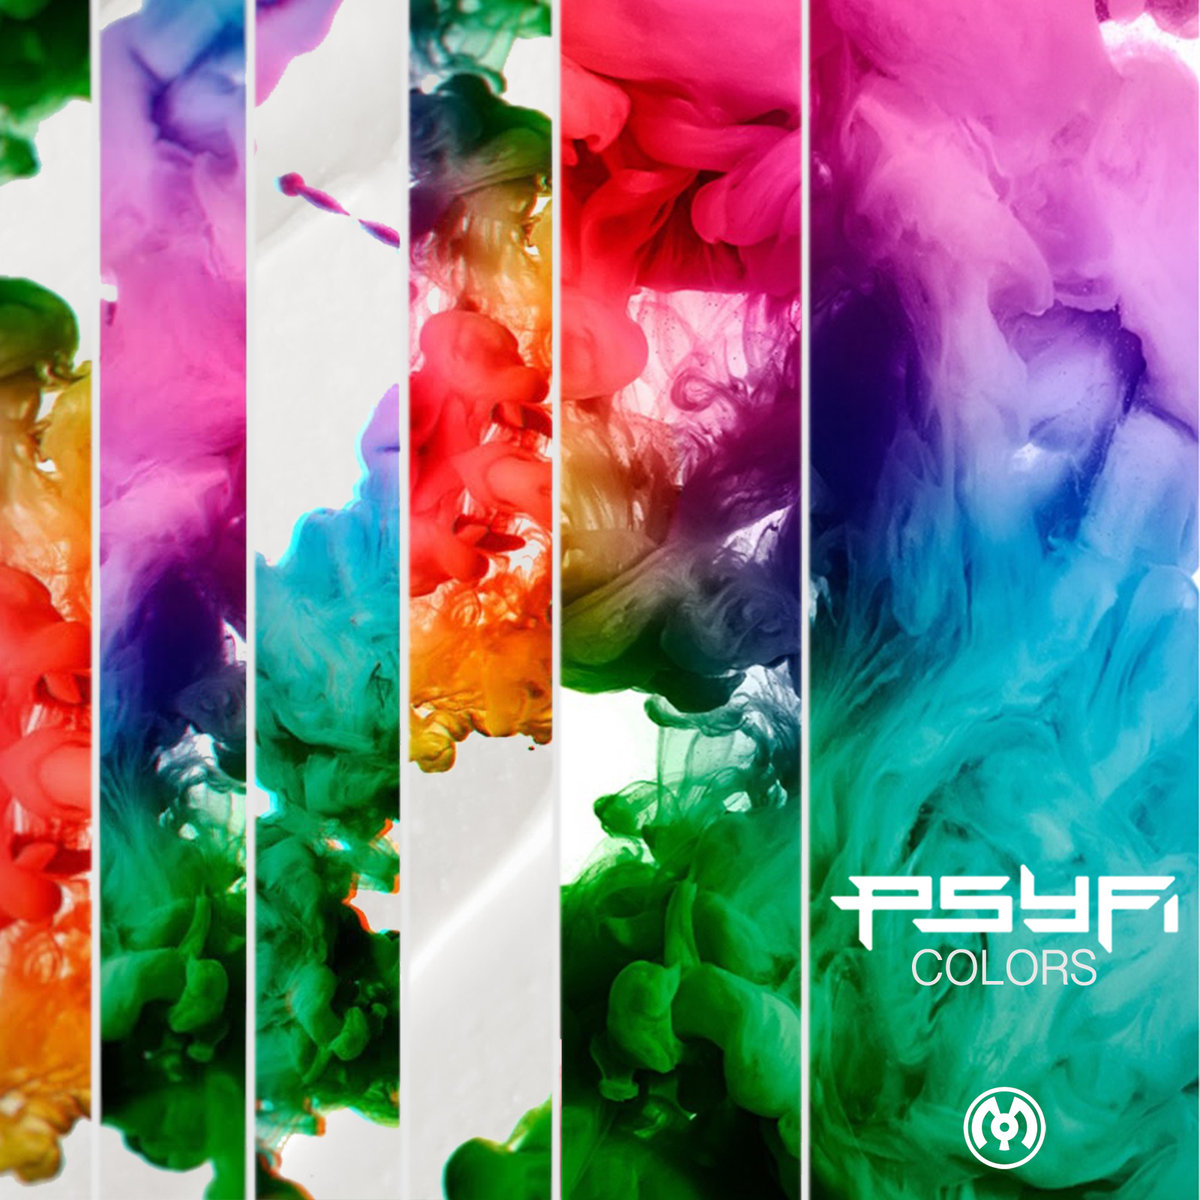 Psy Fi - New Tricks @ 'Colors' album (electronic, dubstep)